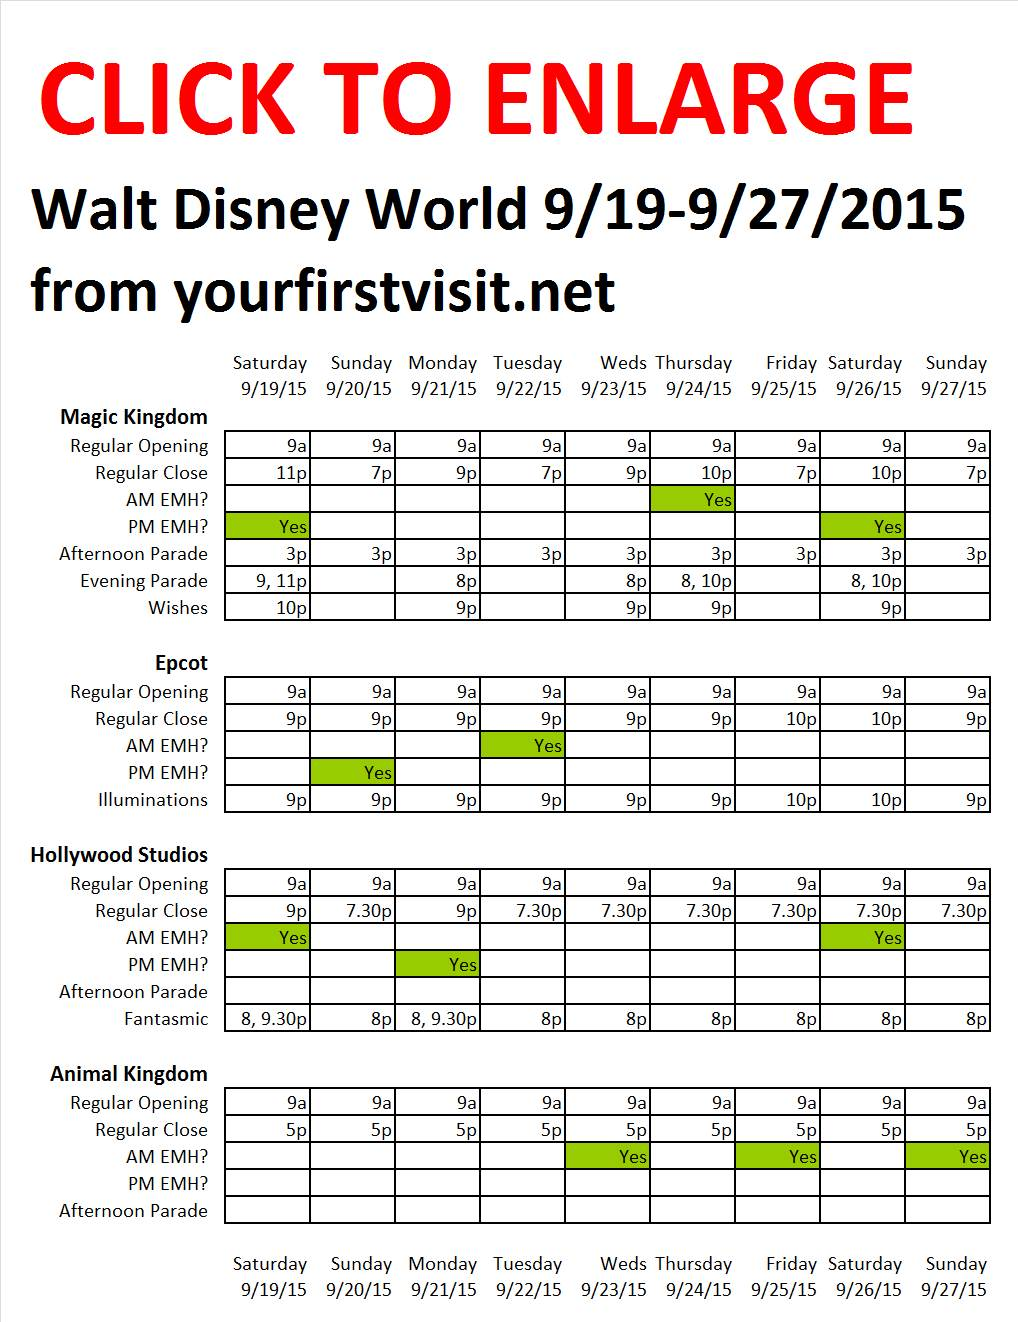 Disney World 9-19 to 9-27-2015 from yourfirstvisit.net